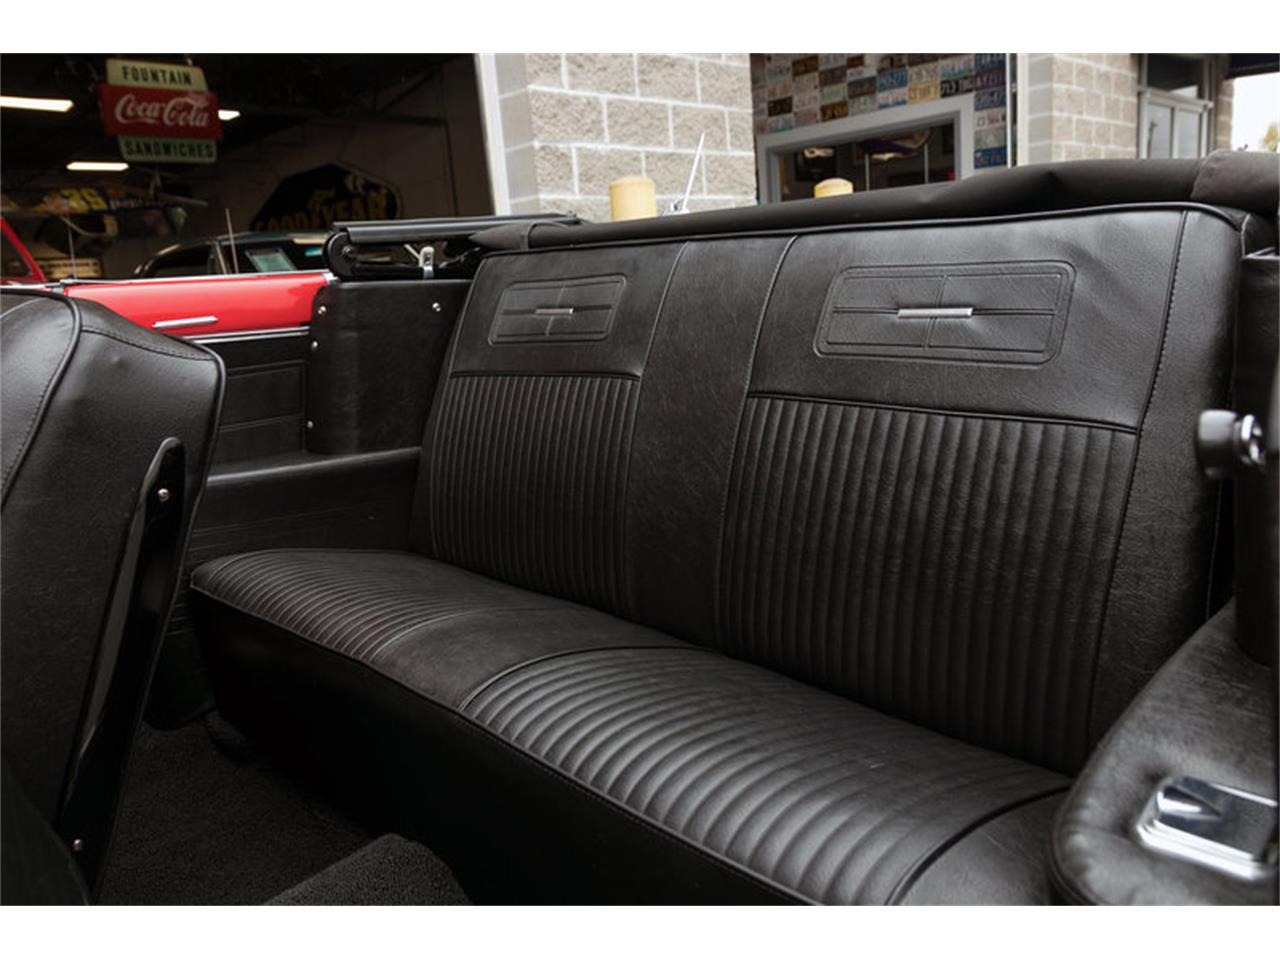 Large Picture of 1963 Chevy II Nova located in St. Charles Missouri - $32,995.00 - MAT6